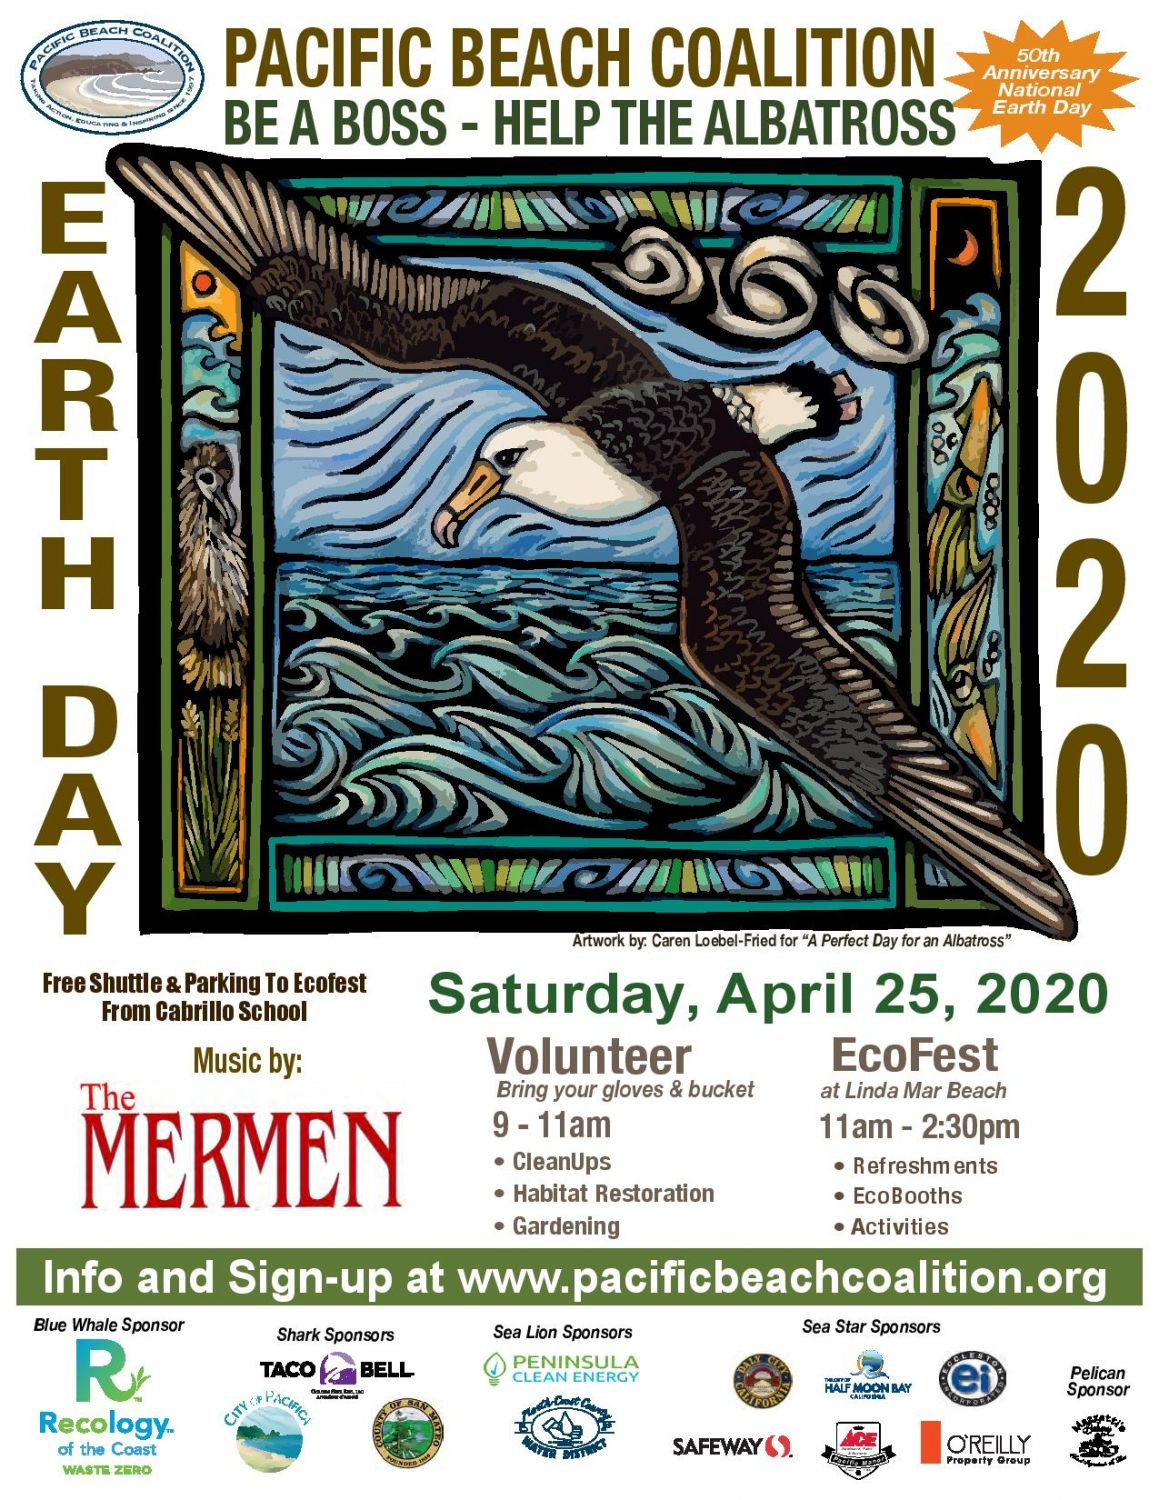 Celebrate Earth Day's 50th Anniversary